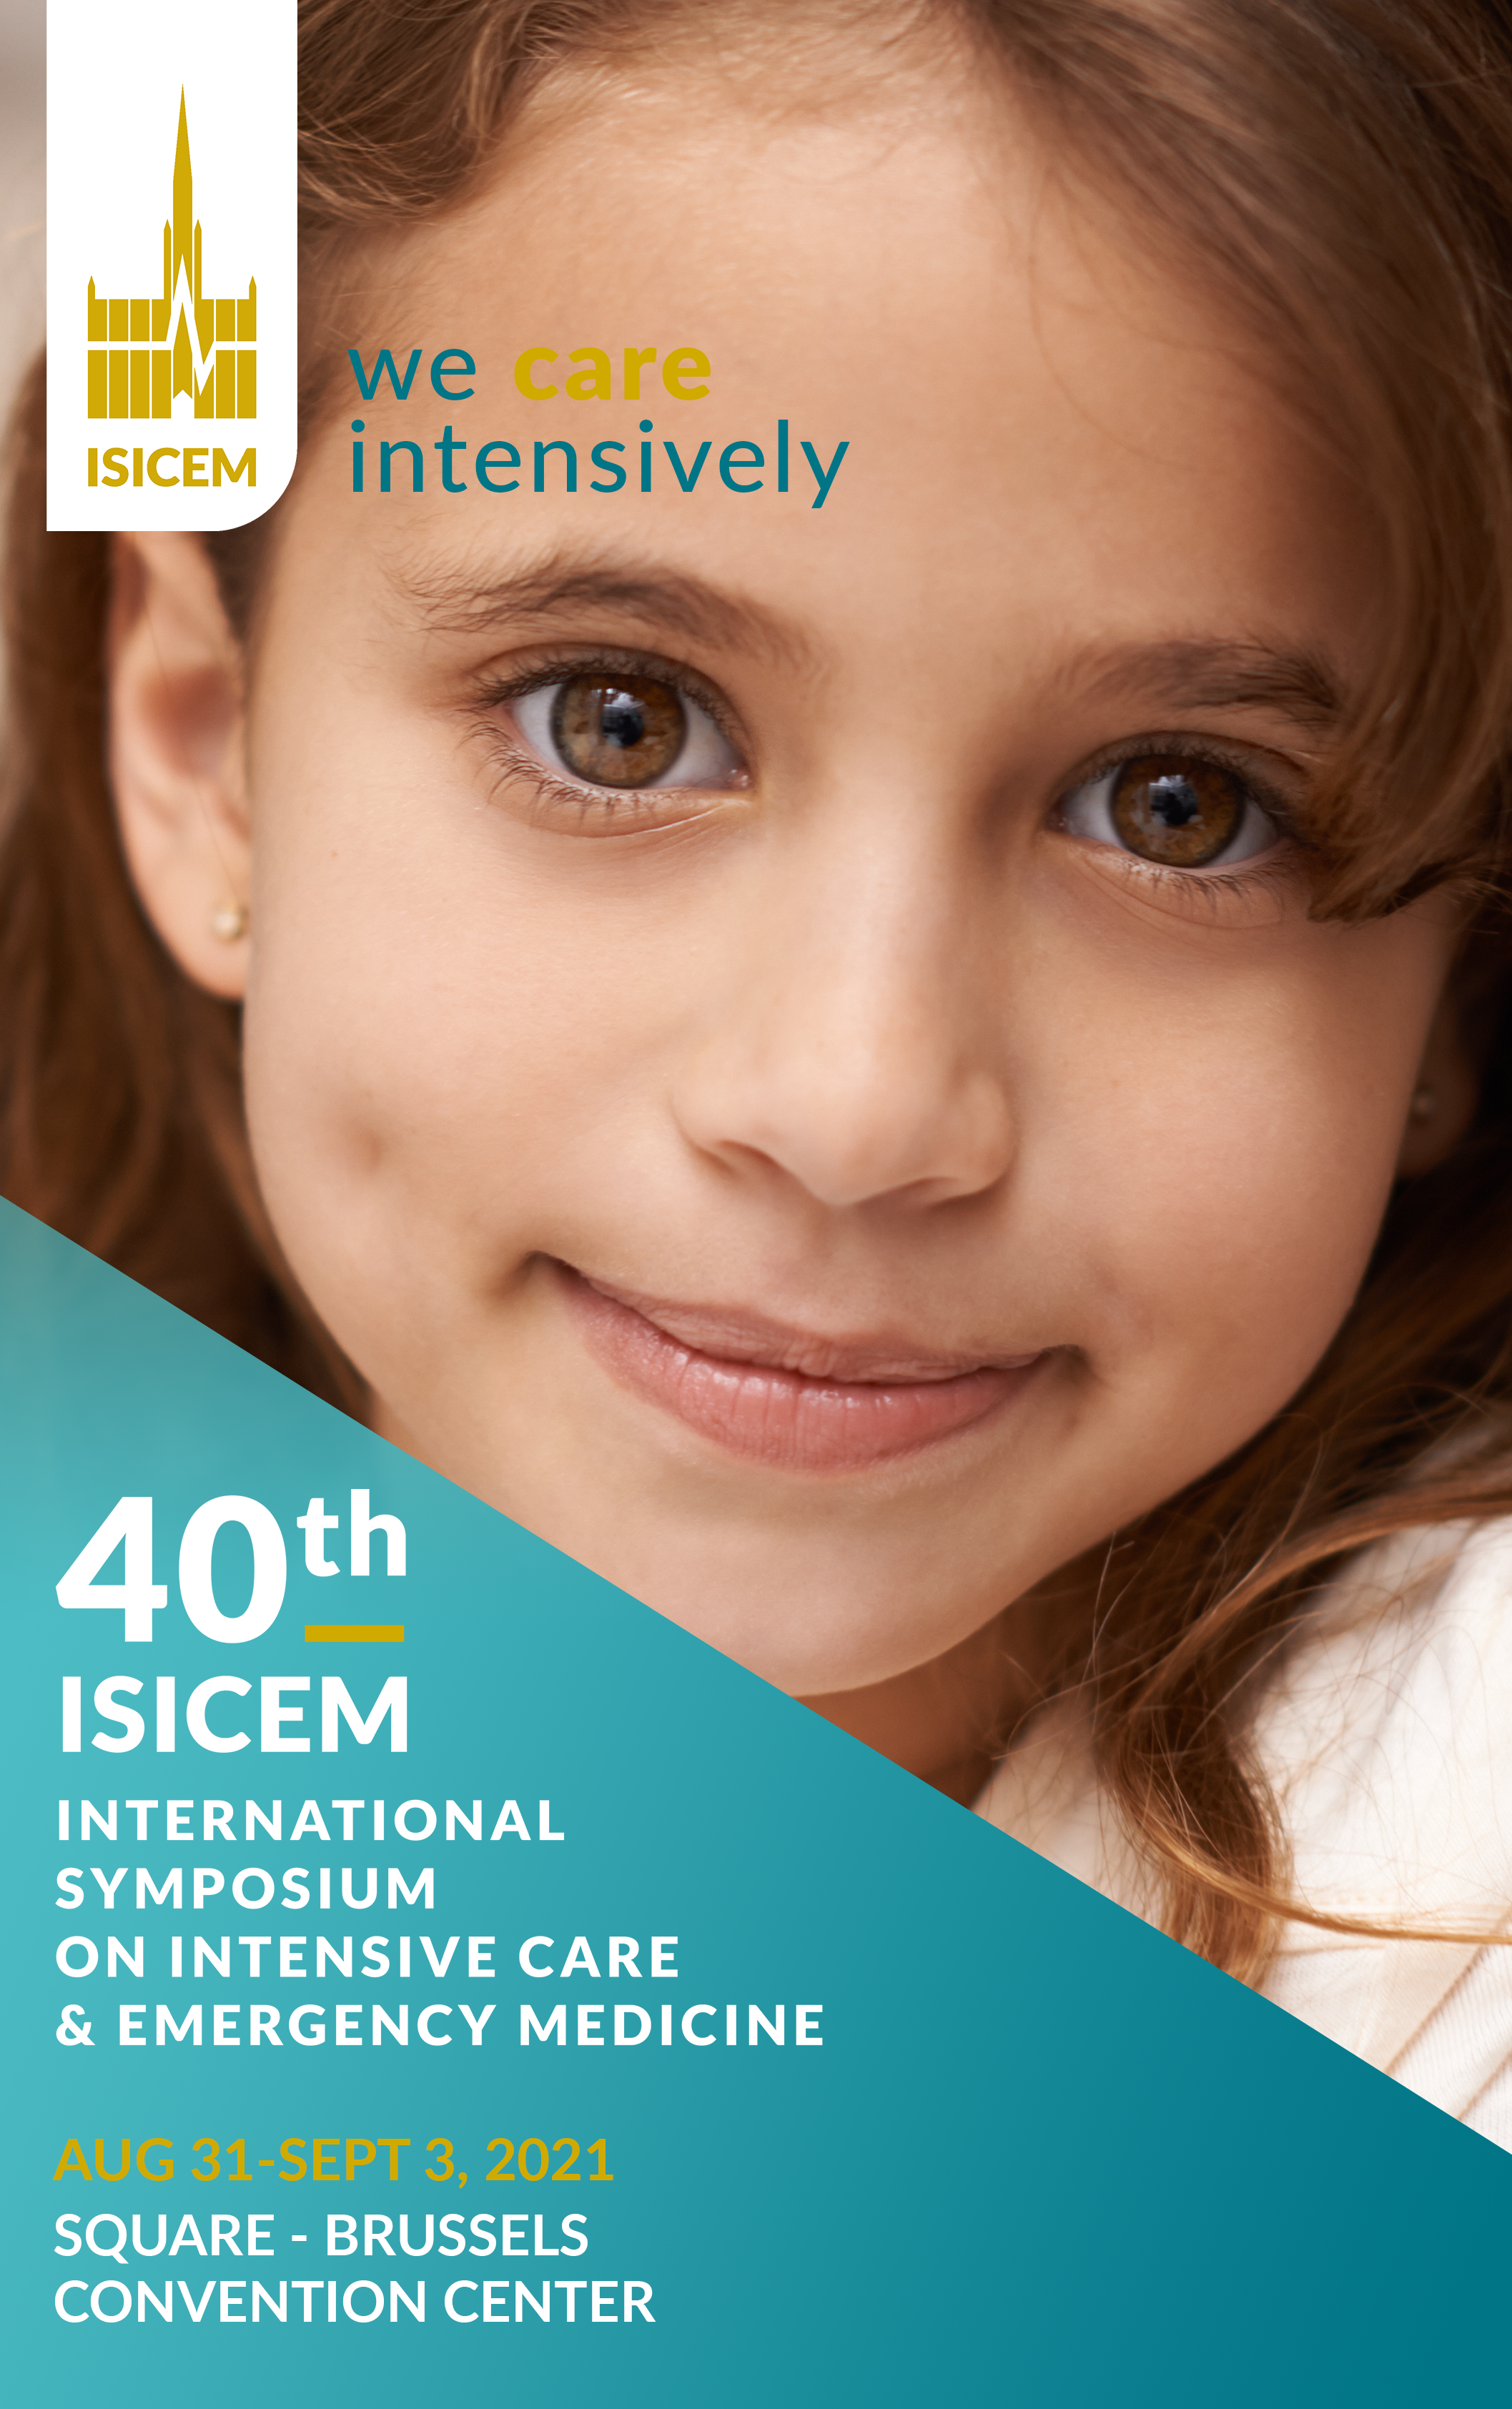 ISICEM - International Symposium on Intensive Care and Emergency